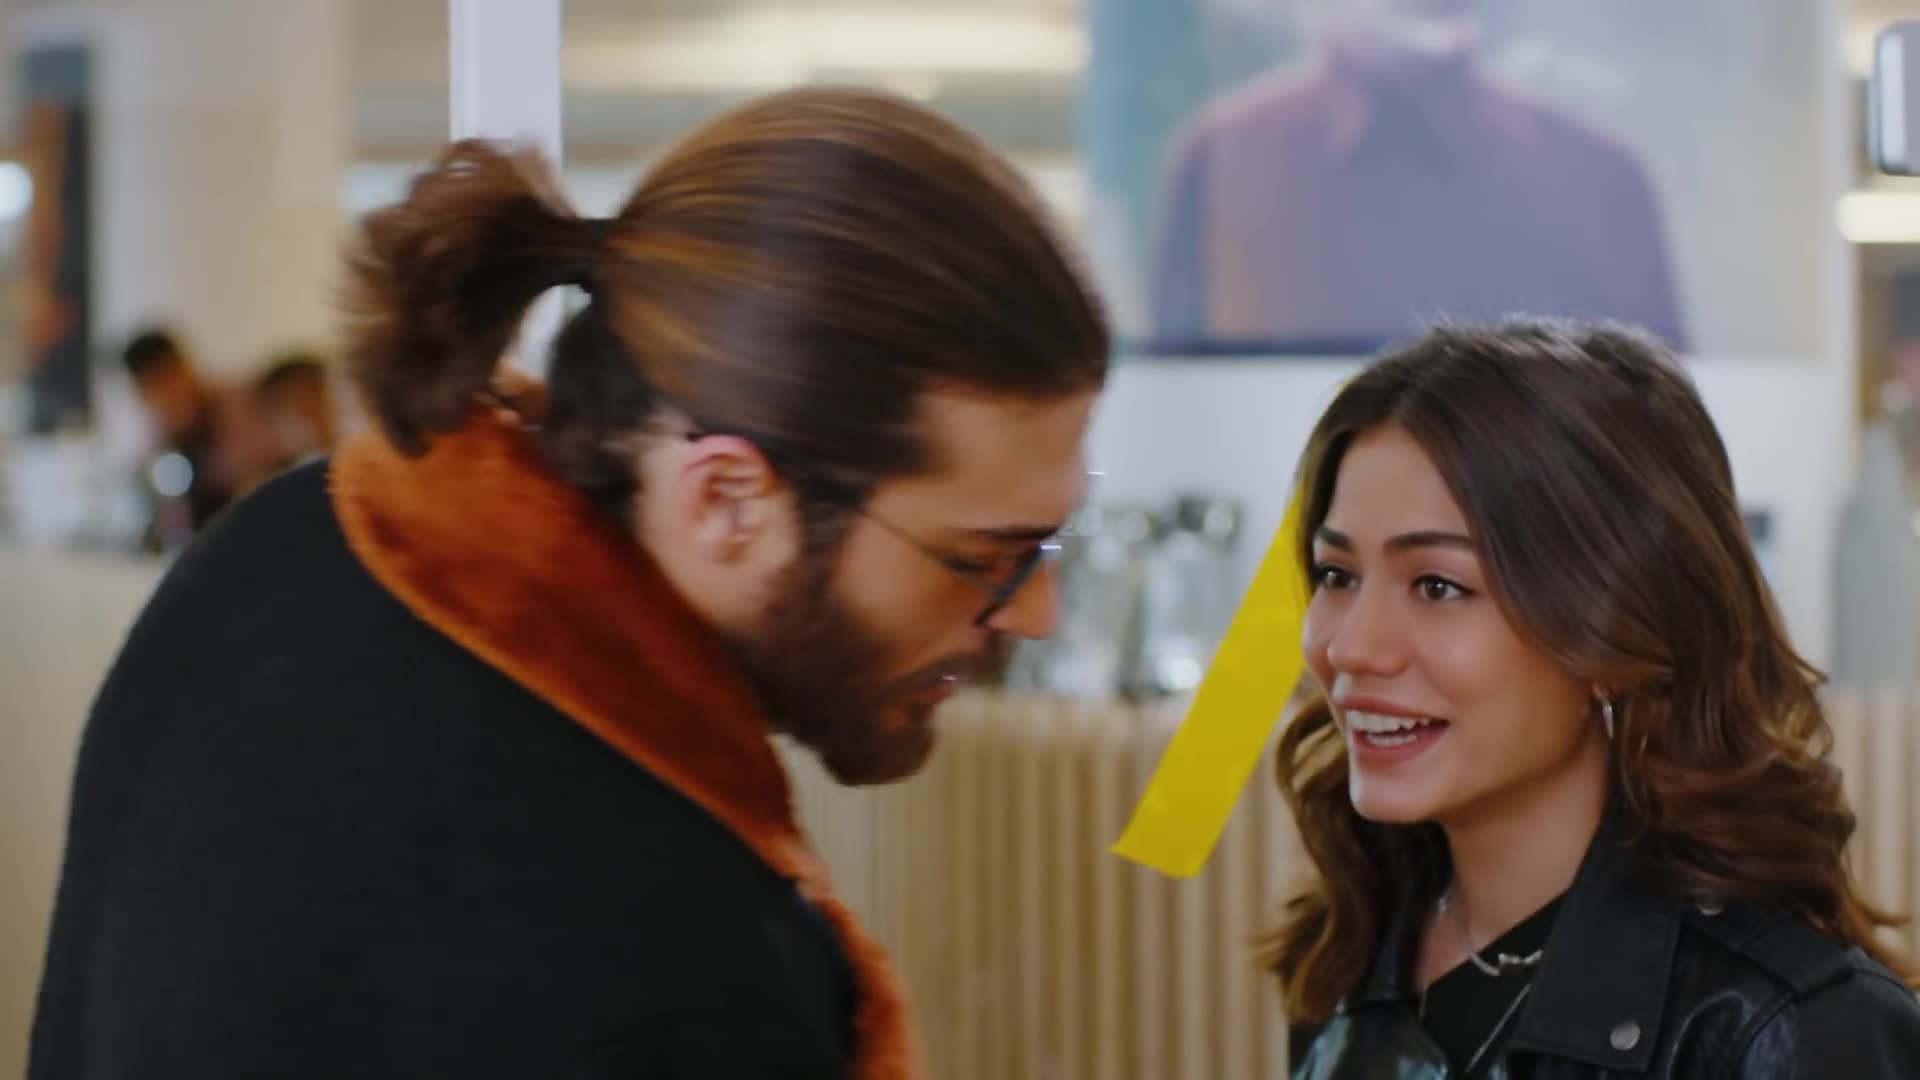 Can Yaman Gifs Search | Search & Share on Homdor